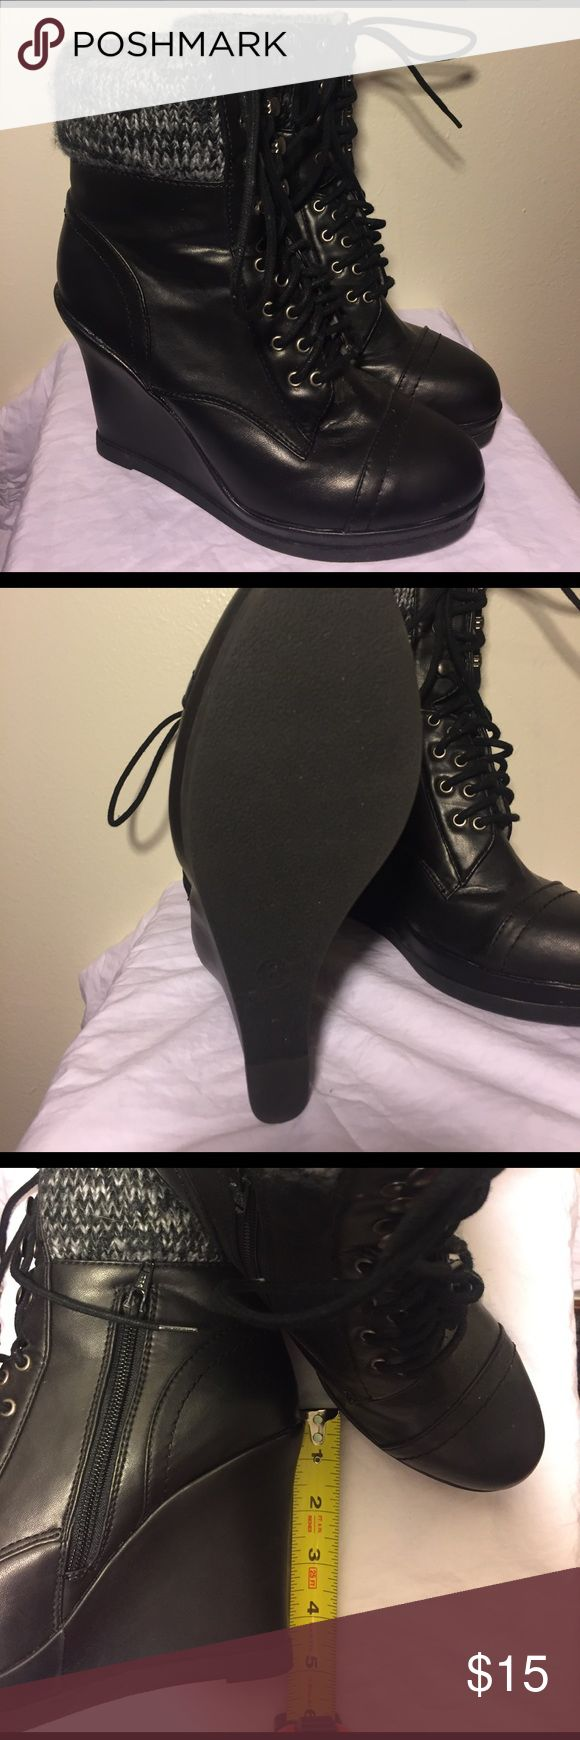 Black Wedge Boots Black Wedged Boots, Sweater pattern on top, Size 8, NEVER WORN Mossimo Supply Co Shoes Ankle Boots & Booties